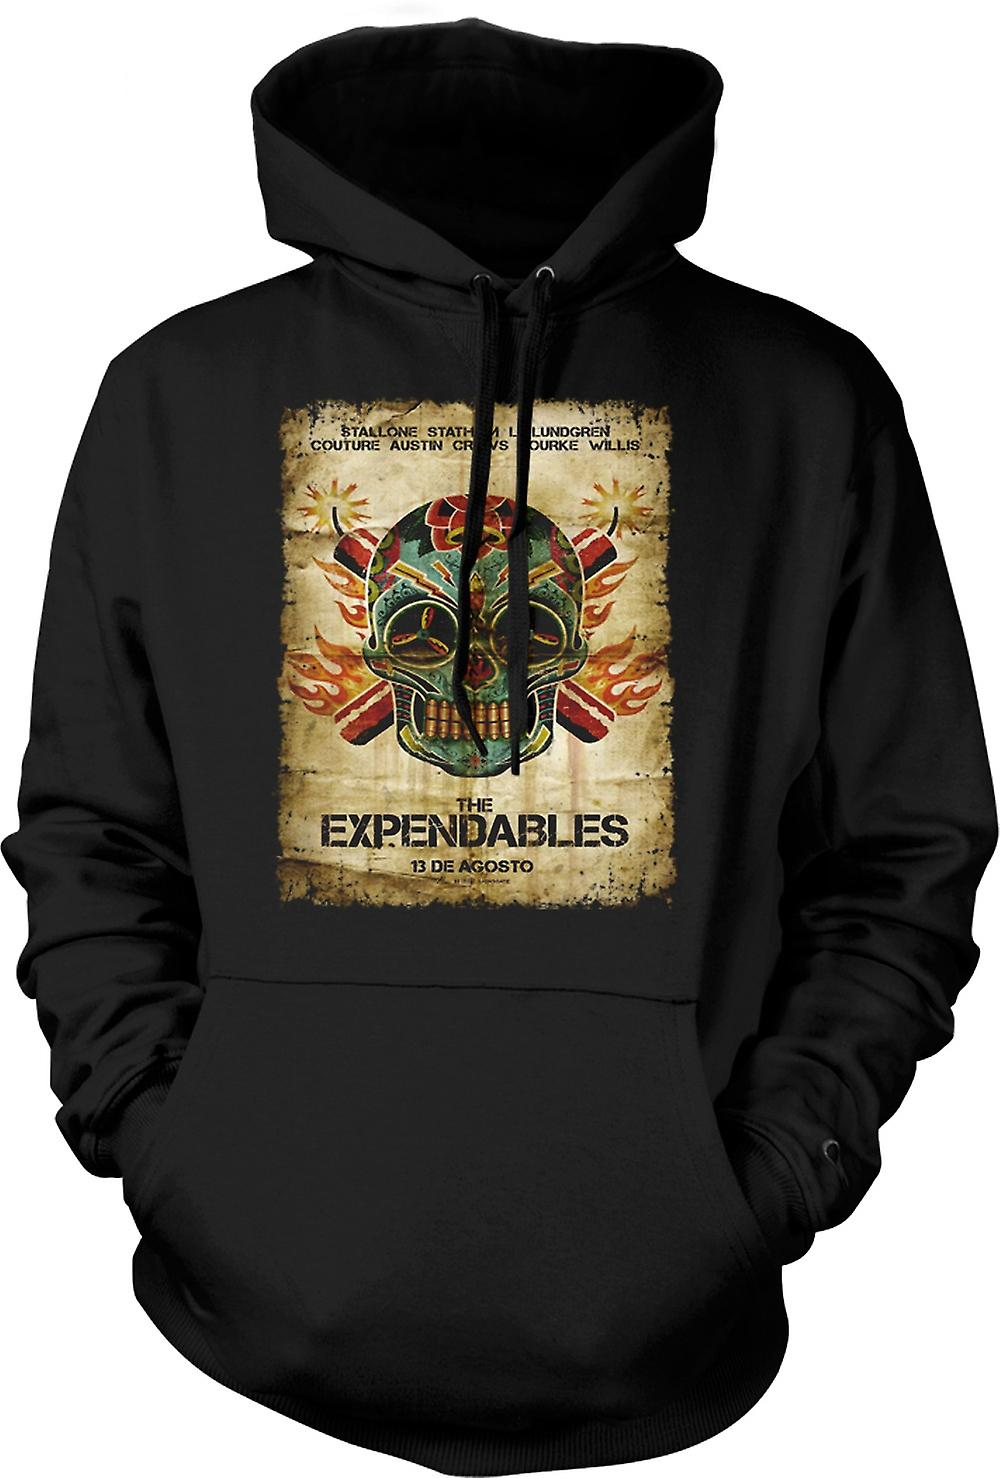 Mens Hoodie - die Expendables - B-Movie - Poster